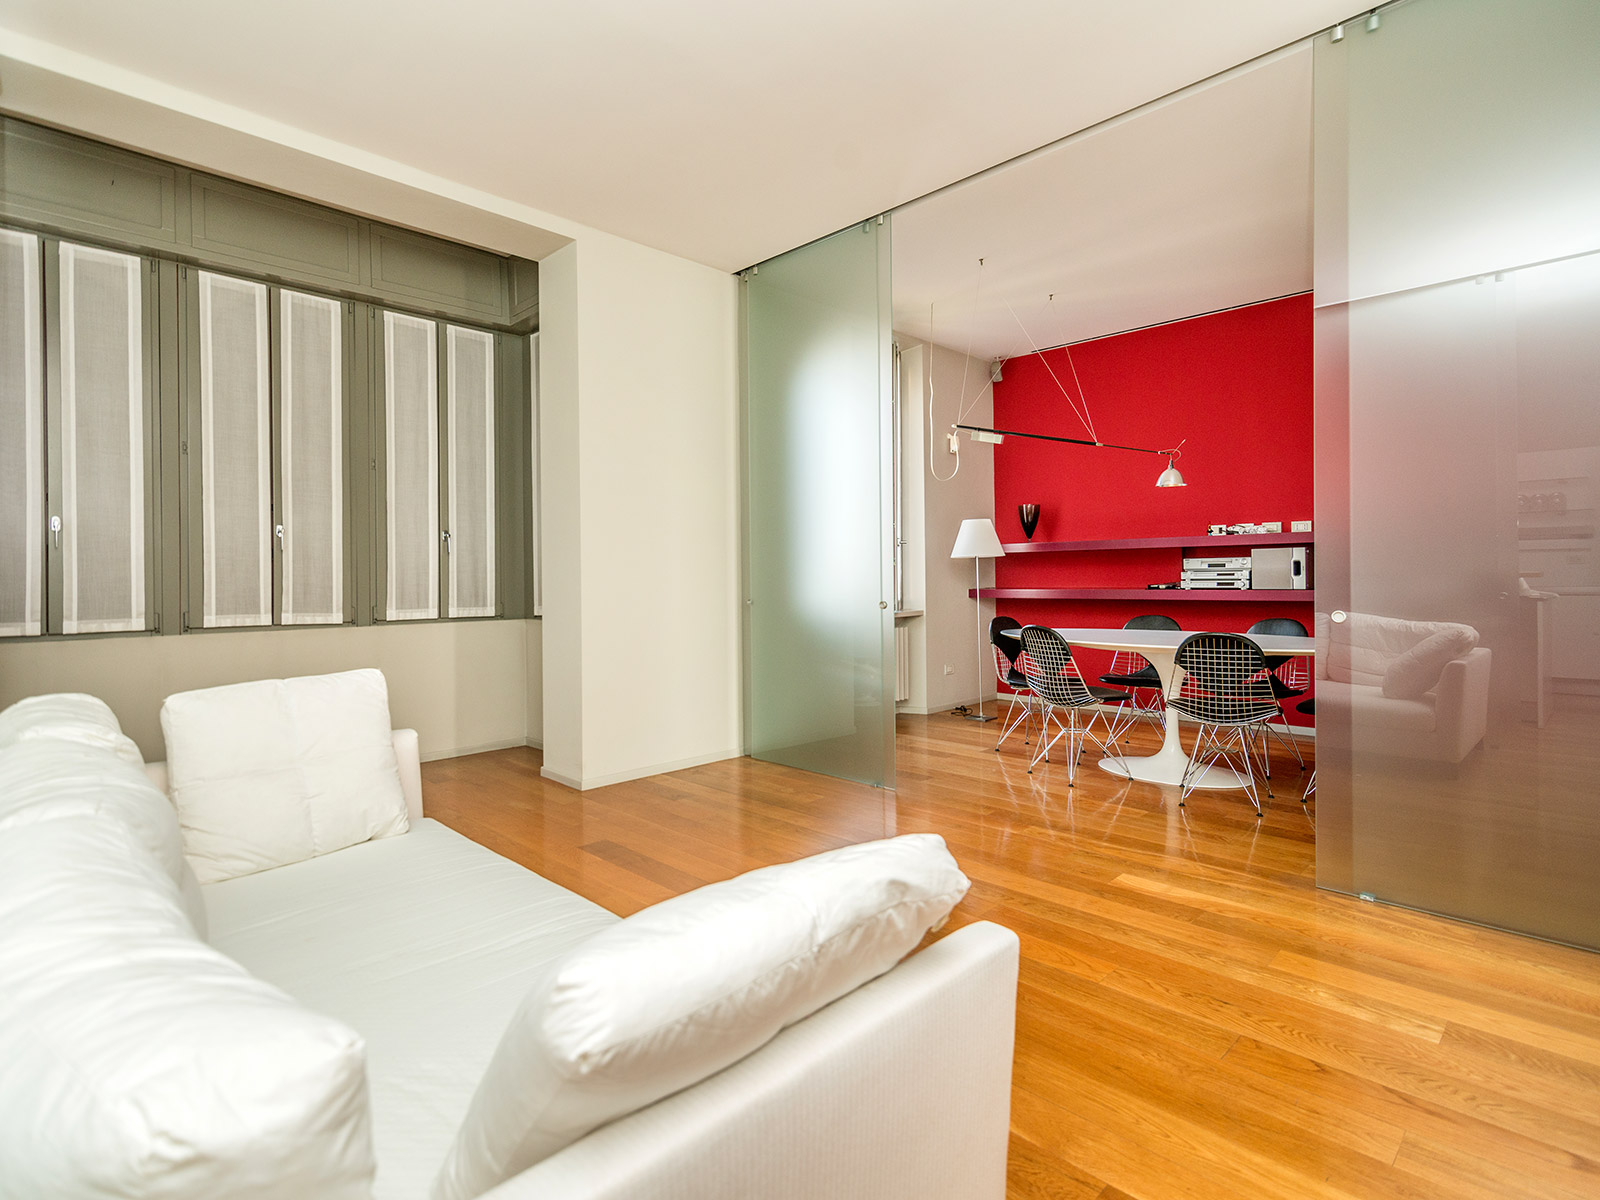 Additional photo for property listing at Modern apartment in Sempione area Via Losanna Milano, Milan 20154 Italia